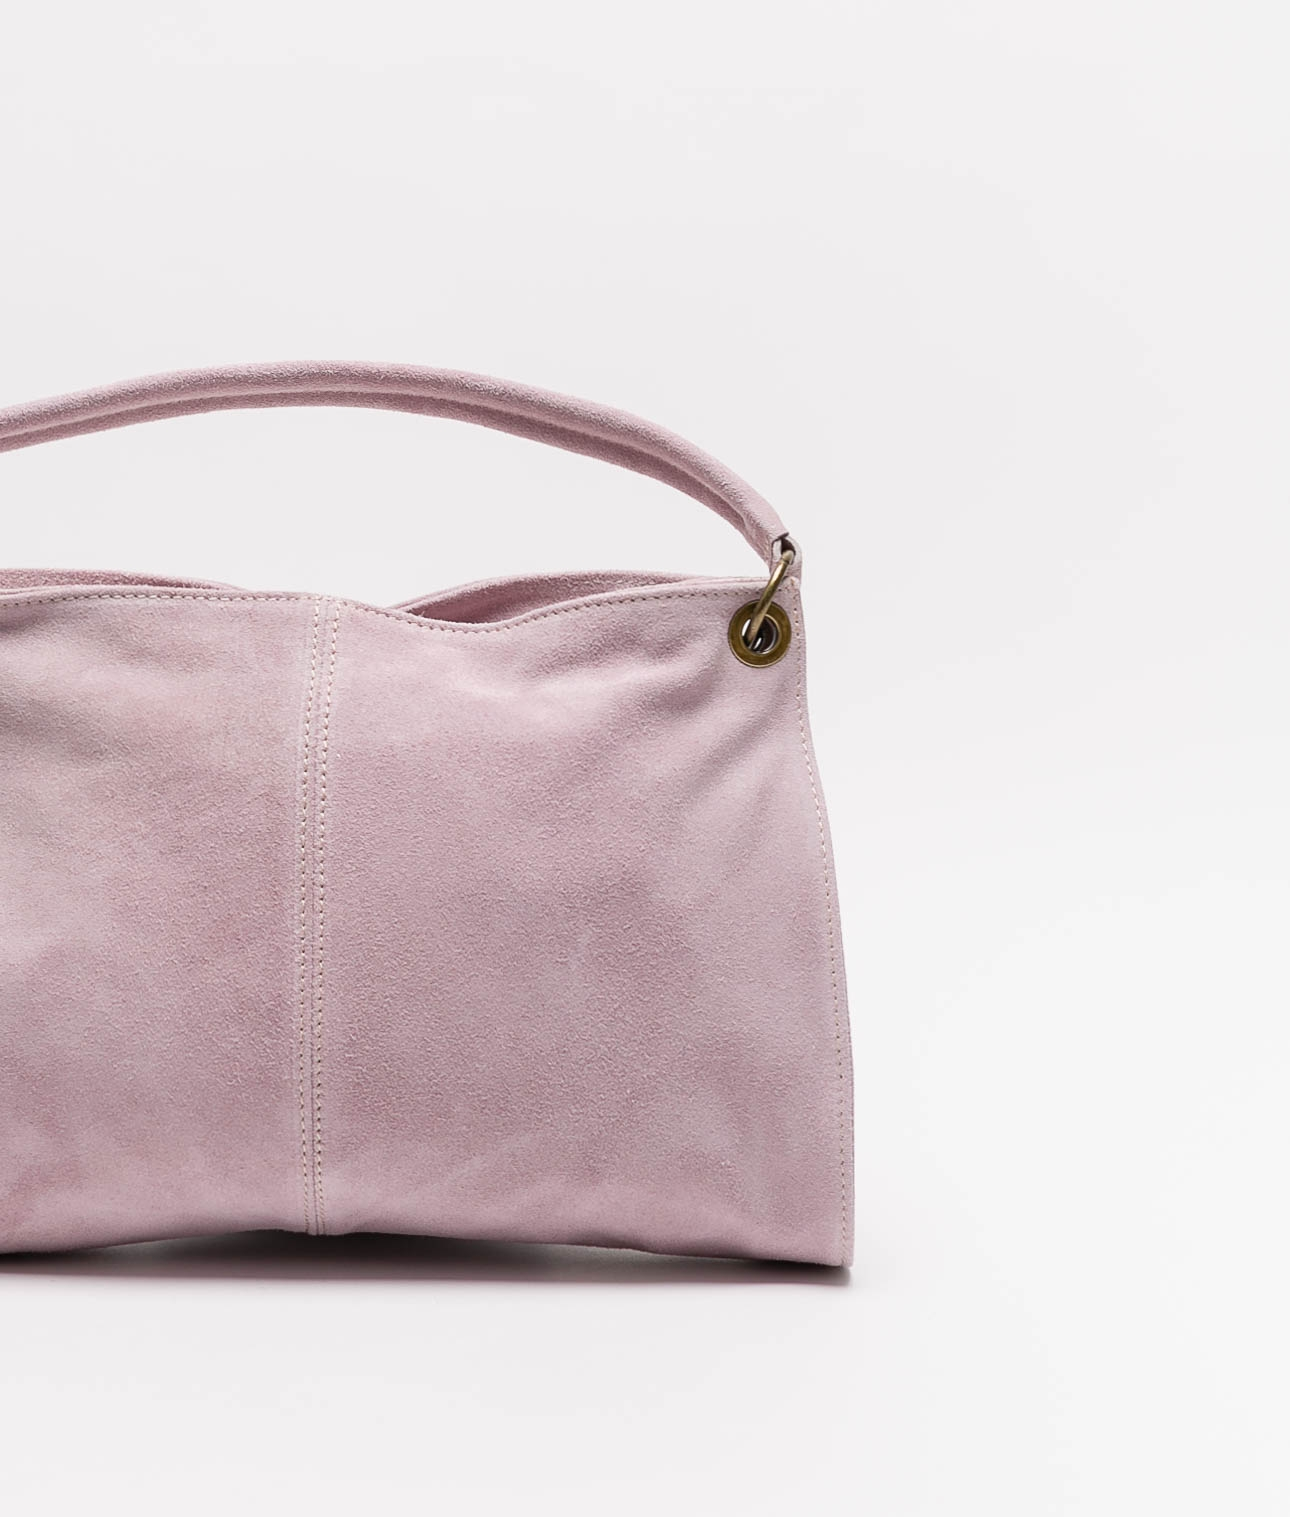 Rica leather bag - pink